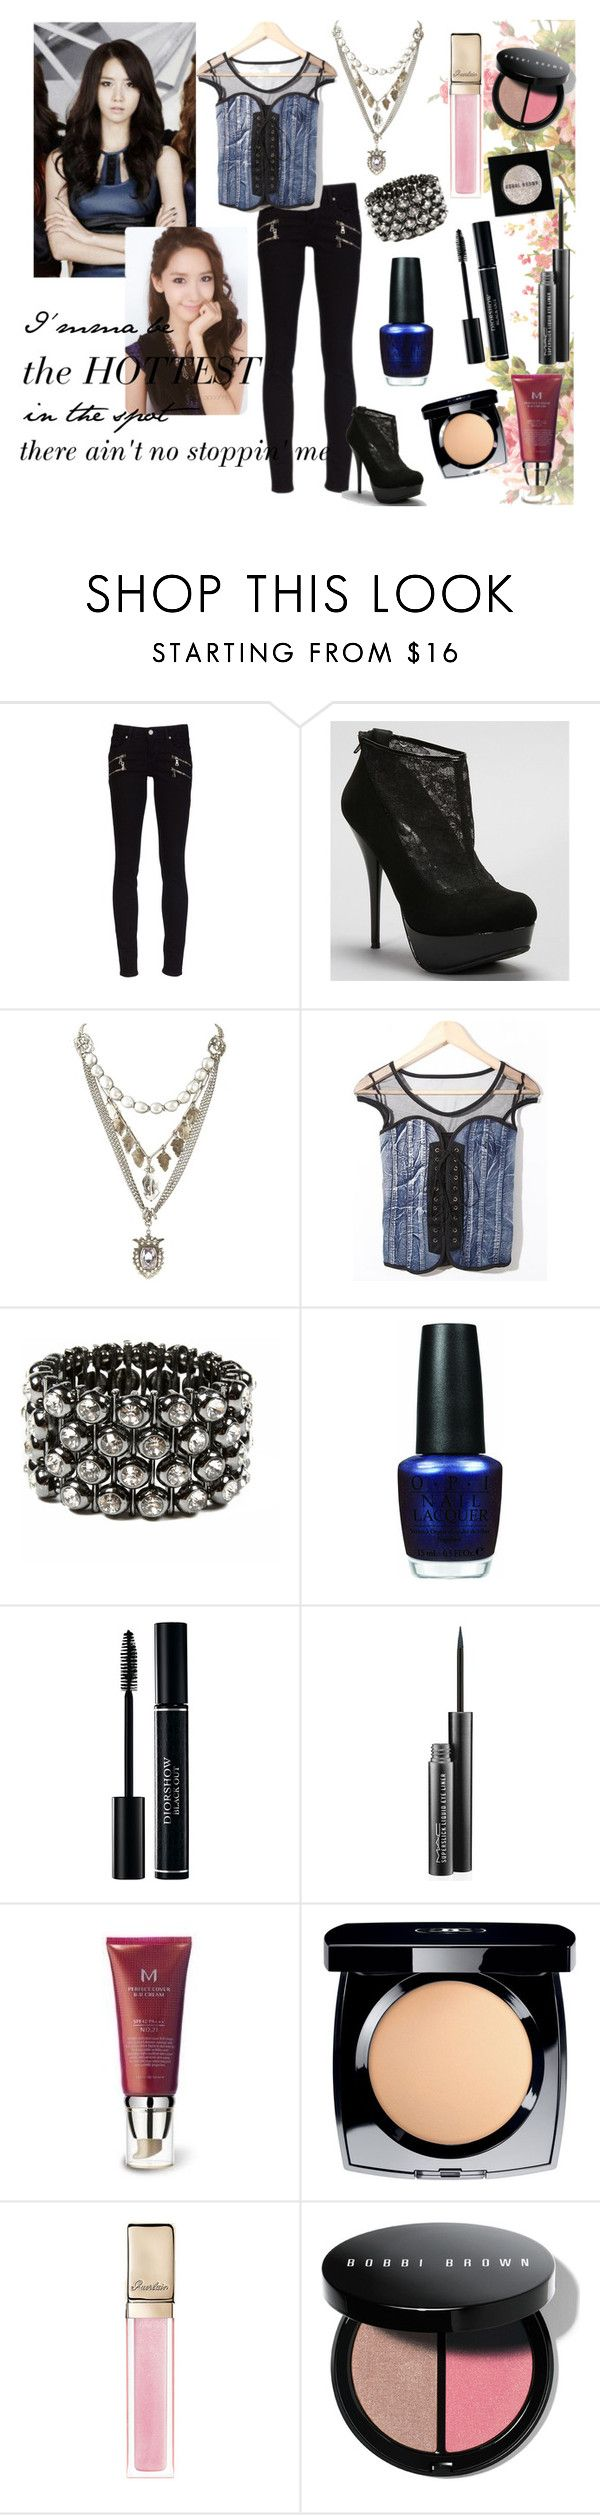 """Yoona ""The Boys"" MV Look - Athena (Fierce and Feminine)"" by migeeringler ❤ liked on Polyvore featuring Paige Denim, Love Heals, Amrita Singh, OPI, Christian Dior, MAC Cosmetics, Missha, Chanel, Guerlain and Bobbi Brown Cosmetics"